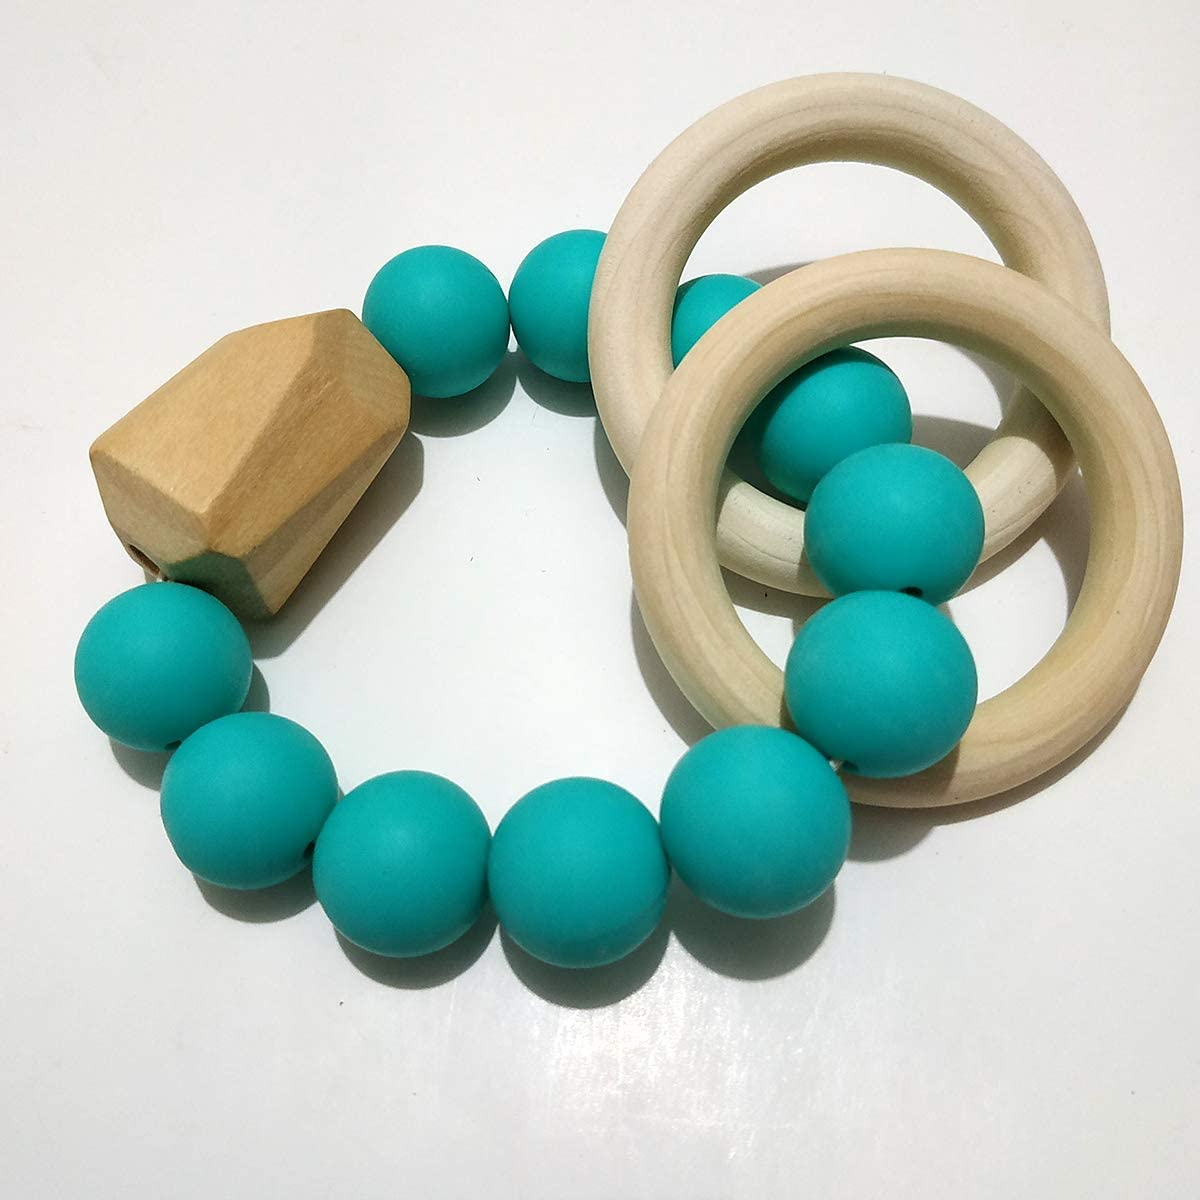 Alenybeby Natural Wooden Beads Silicone Beads Bracelet Baby Tooth Nursing Toys Baby Shower Toys Gift Army green-01